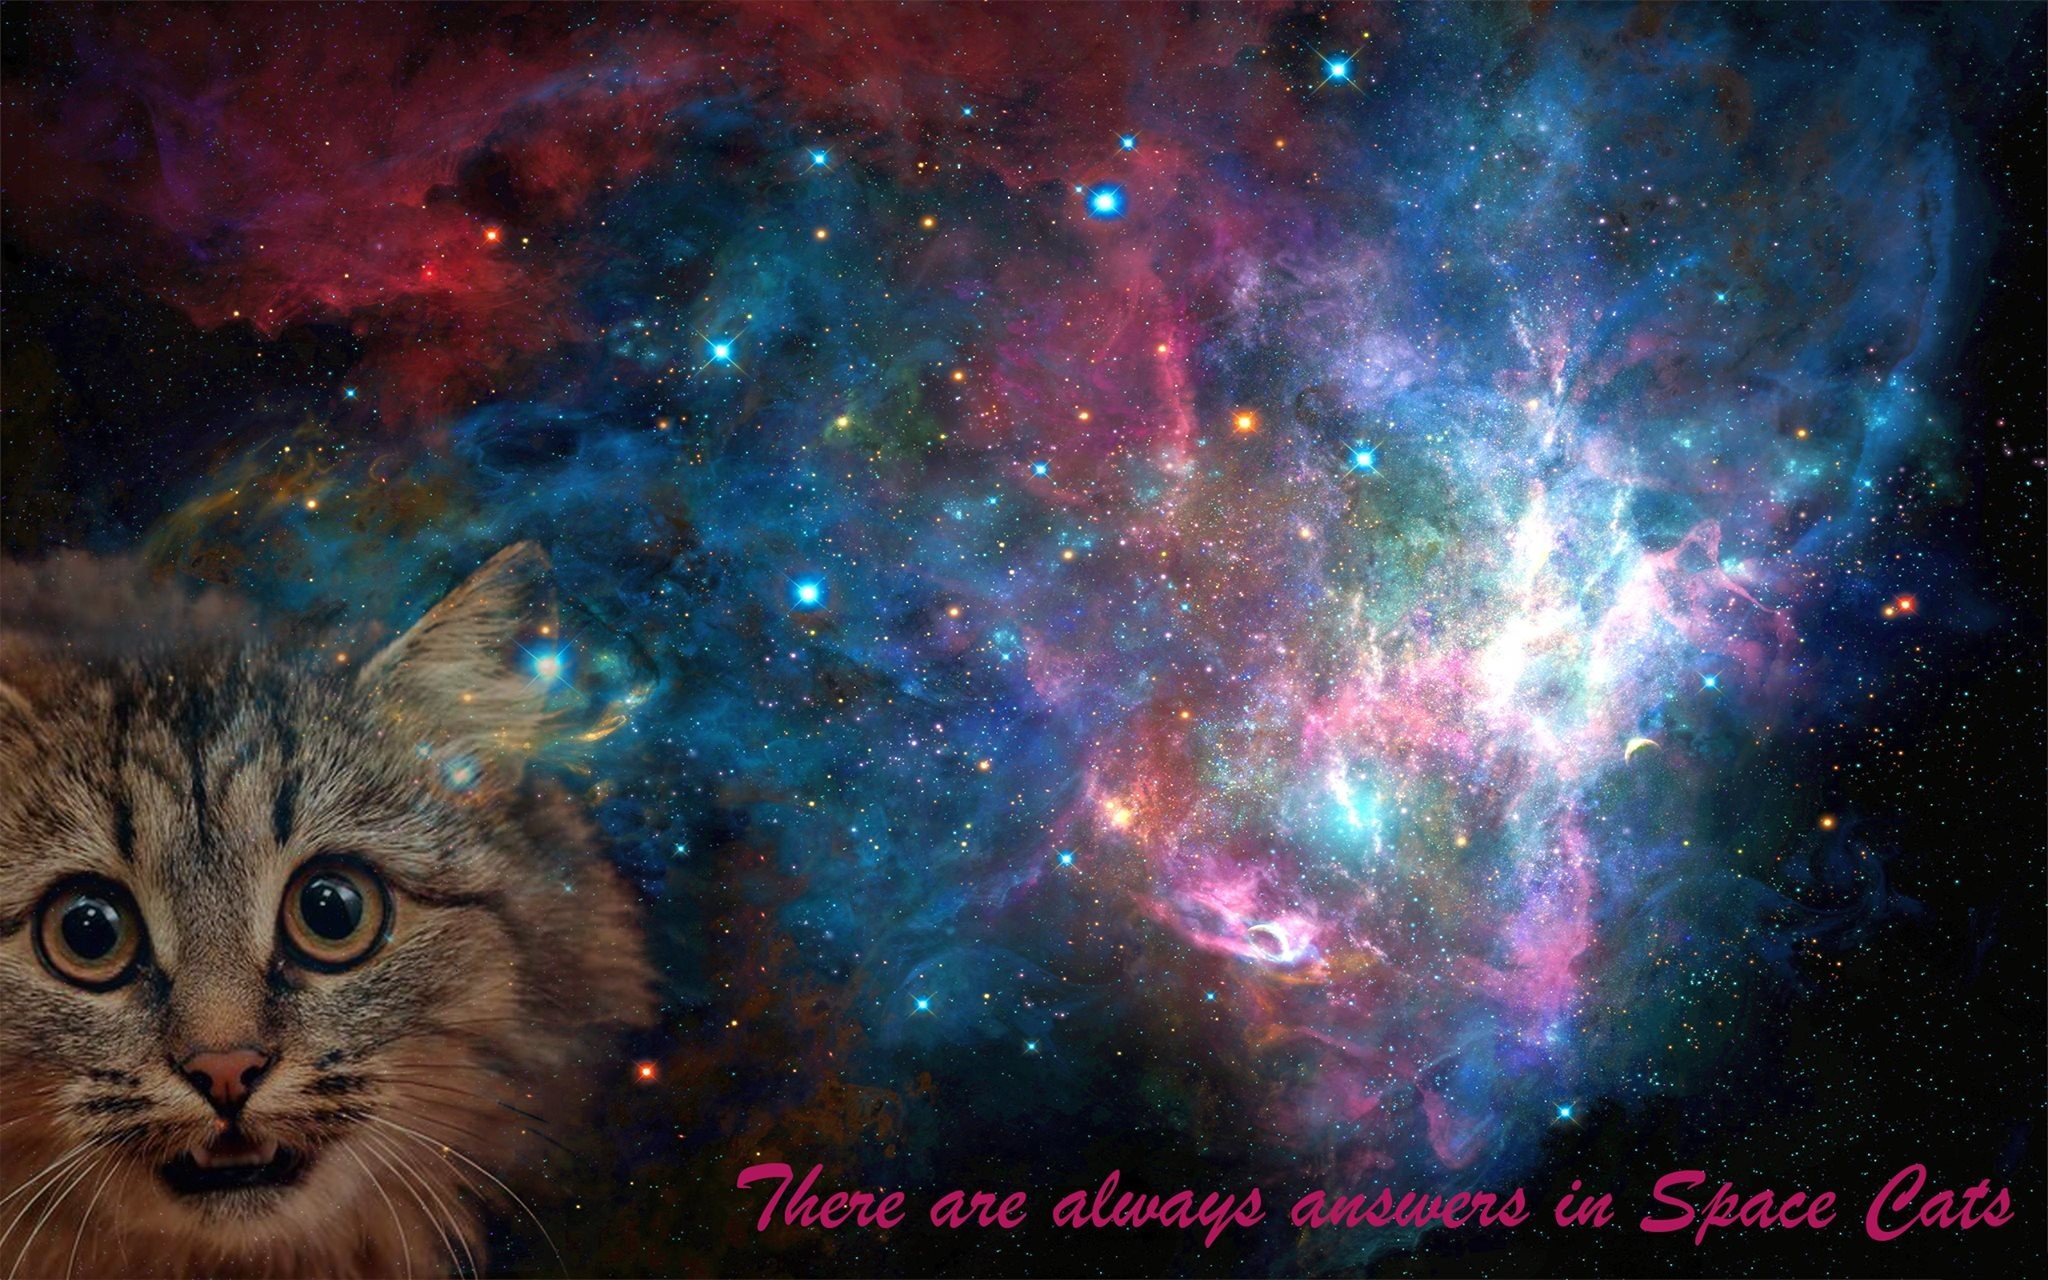 Galaxy Space Wallpaper 4k Apk Download: Space, Cat, Space Cat, Galaxy HD Wallpapers / Desktop And